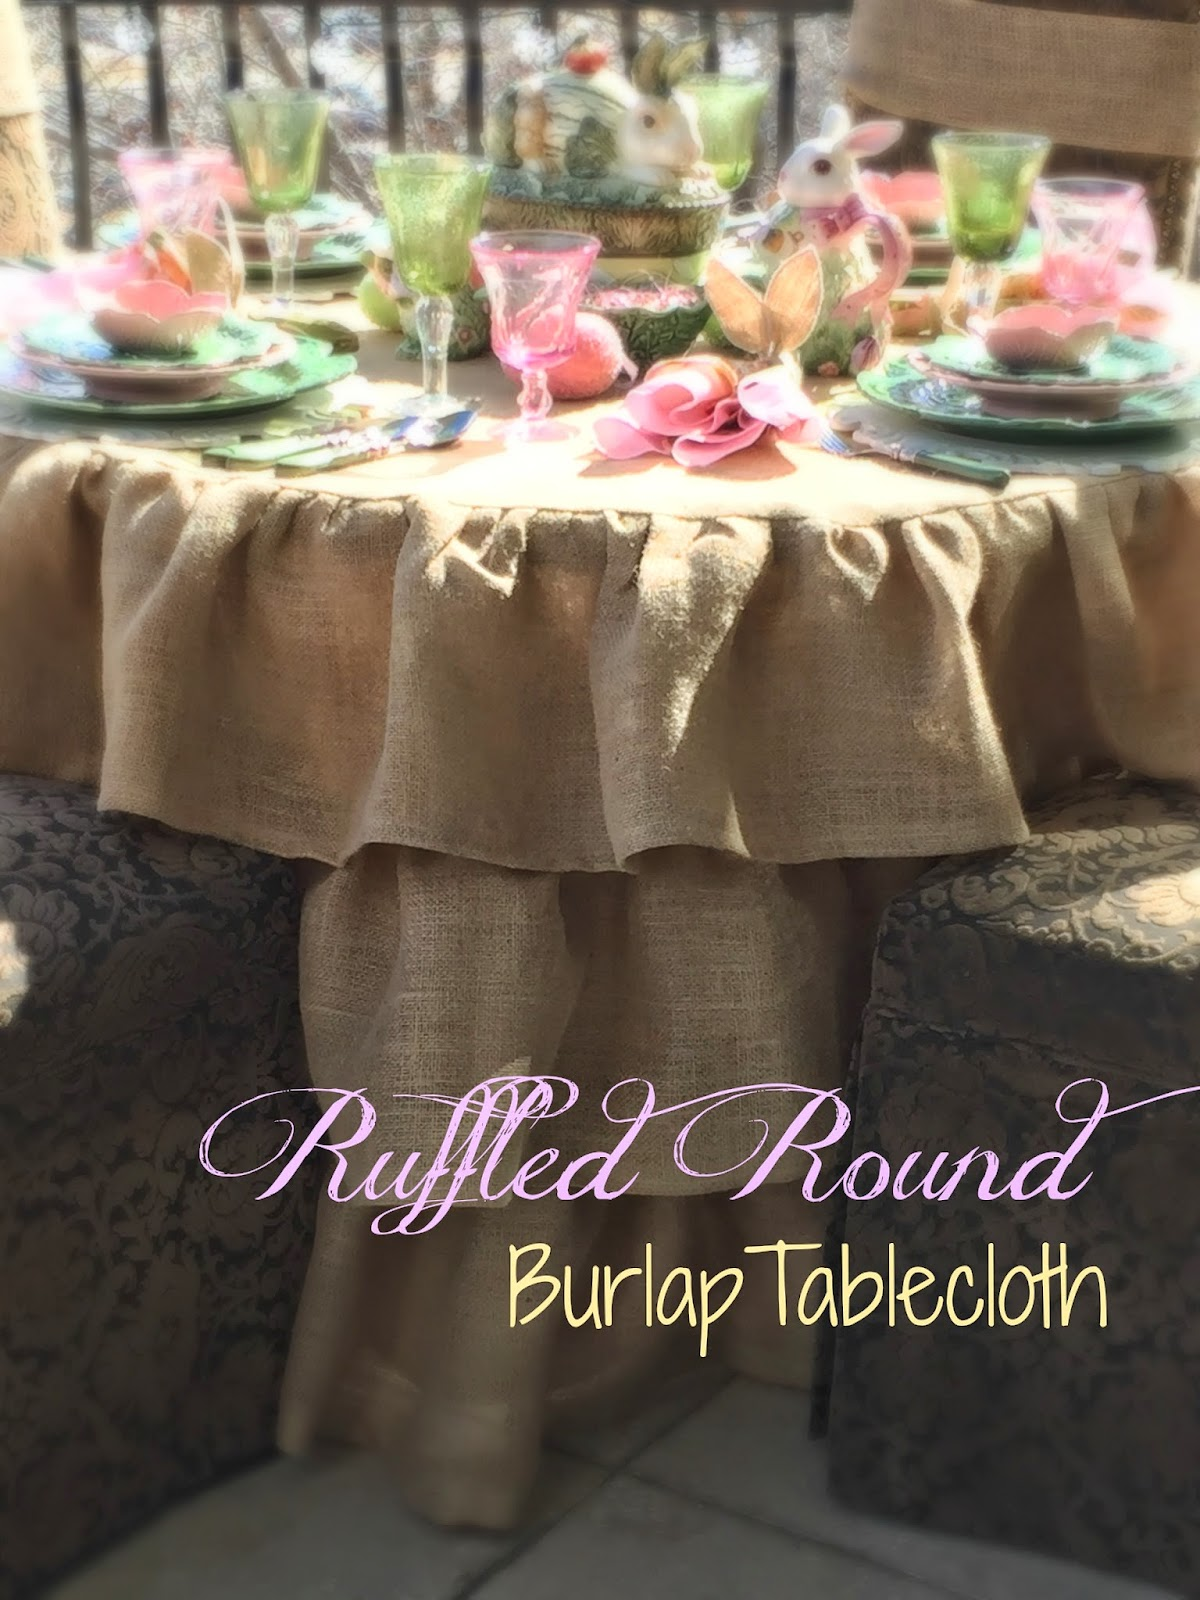 Merveilleux Ruffled Round Burlap Tablecloth Tutorial